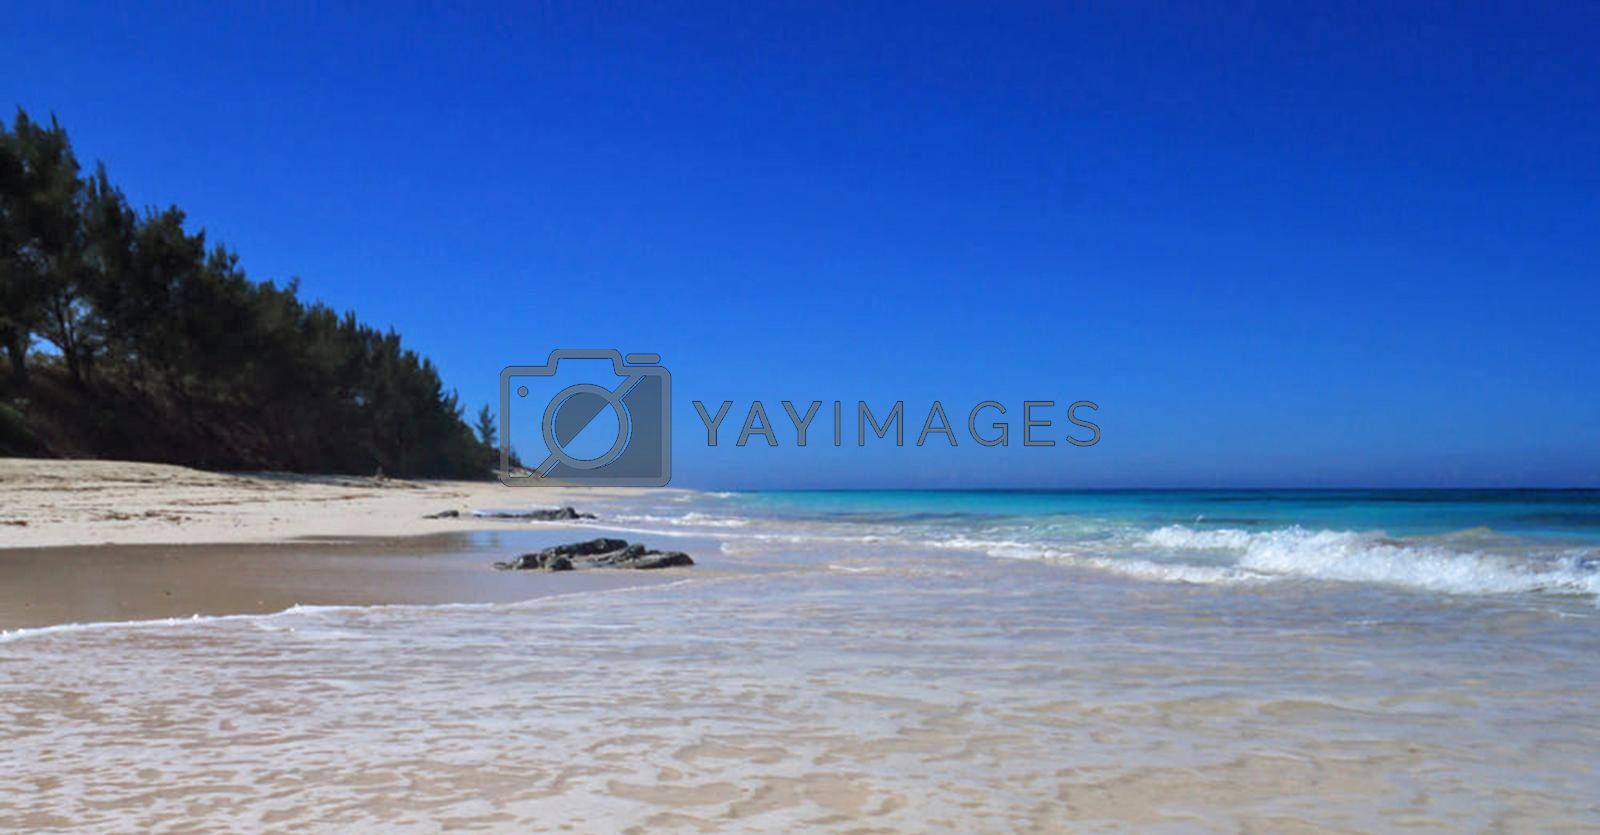 Beautiful pictures of  Bahamas